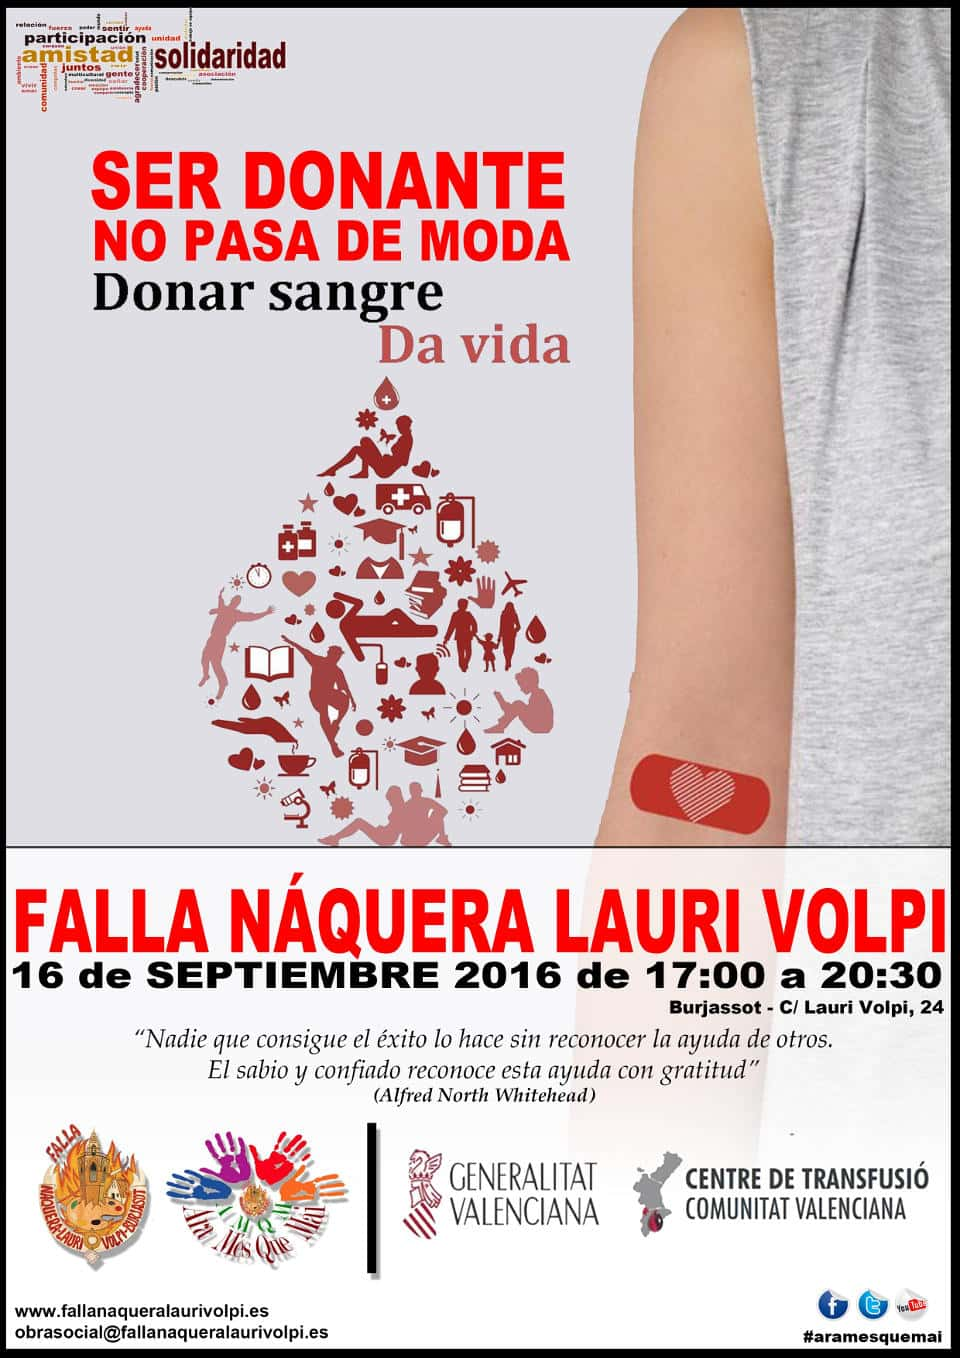 Blood donation in the Falla Náquera - Lauri Volpi in Burjassot